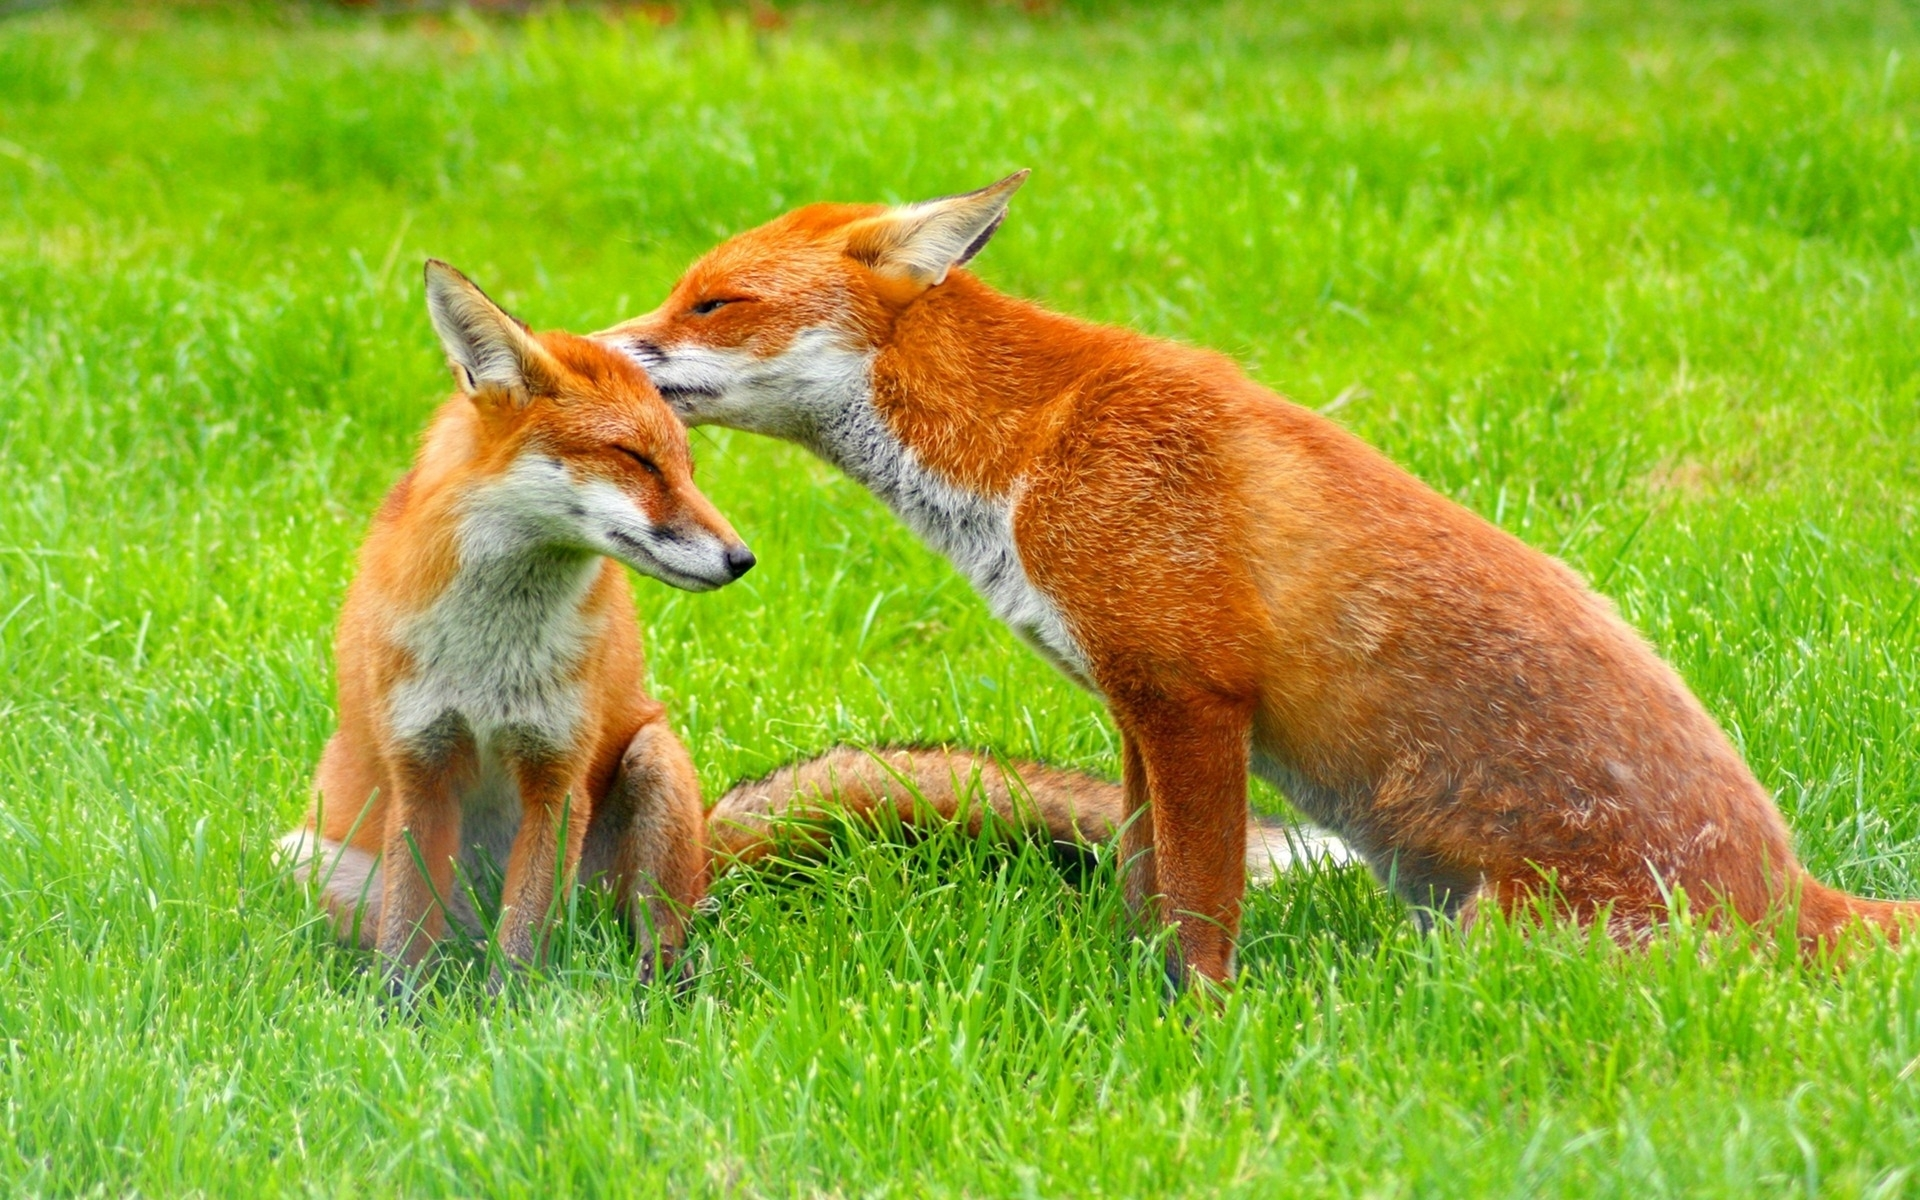 41681 download wallpaper Animals, Fox screensavers and pictures for free